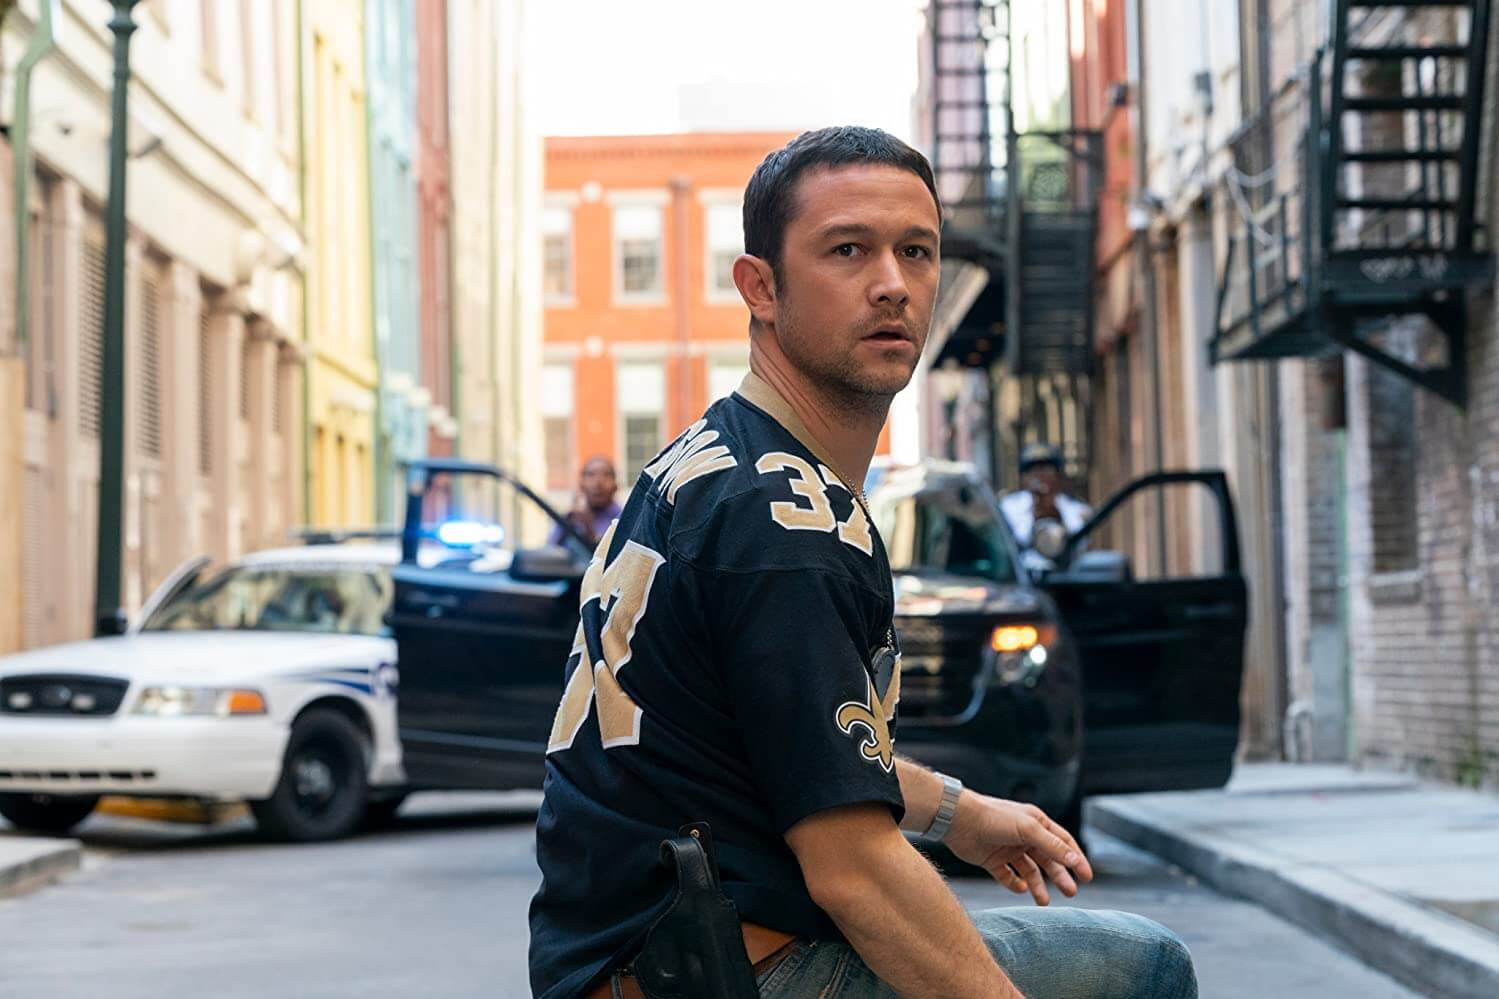 Project Power Joseph Gordon-Levitt as Frank Shaver in street outfit